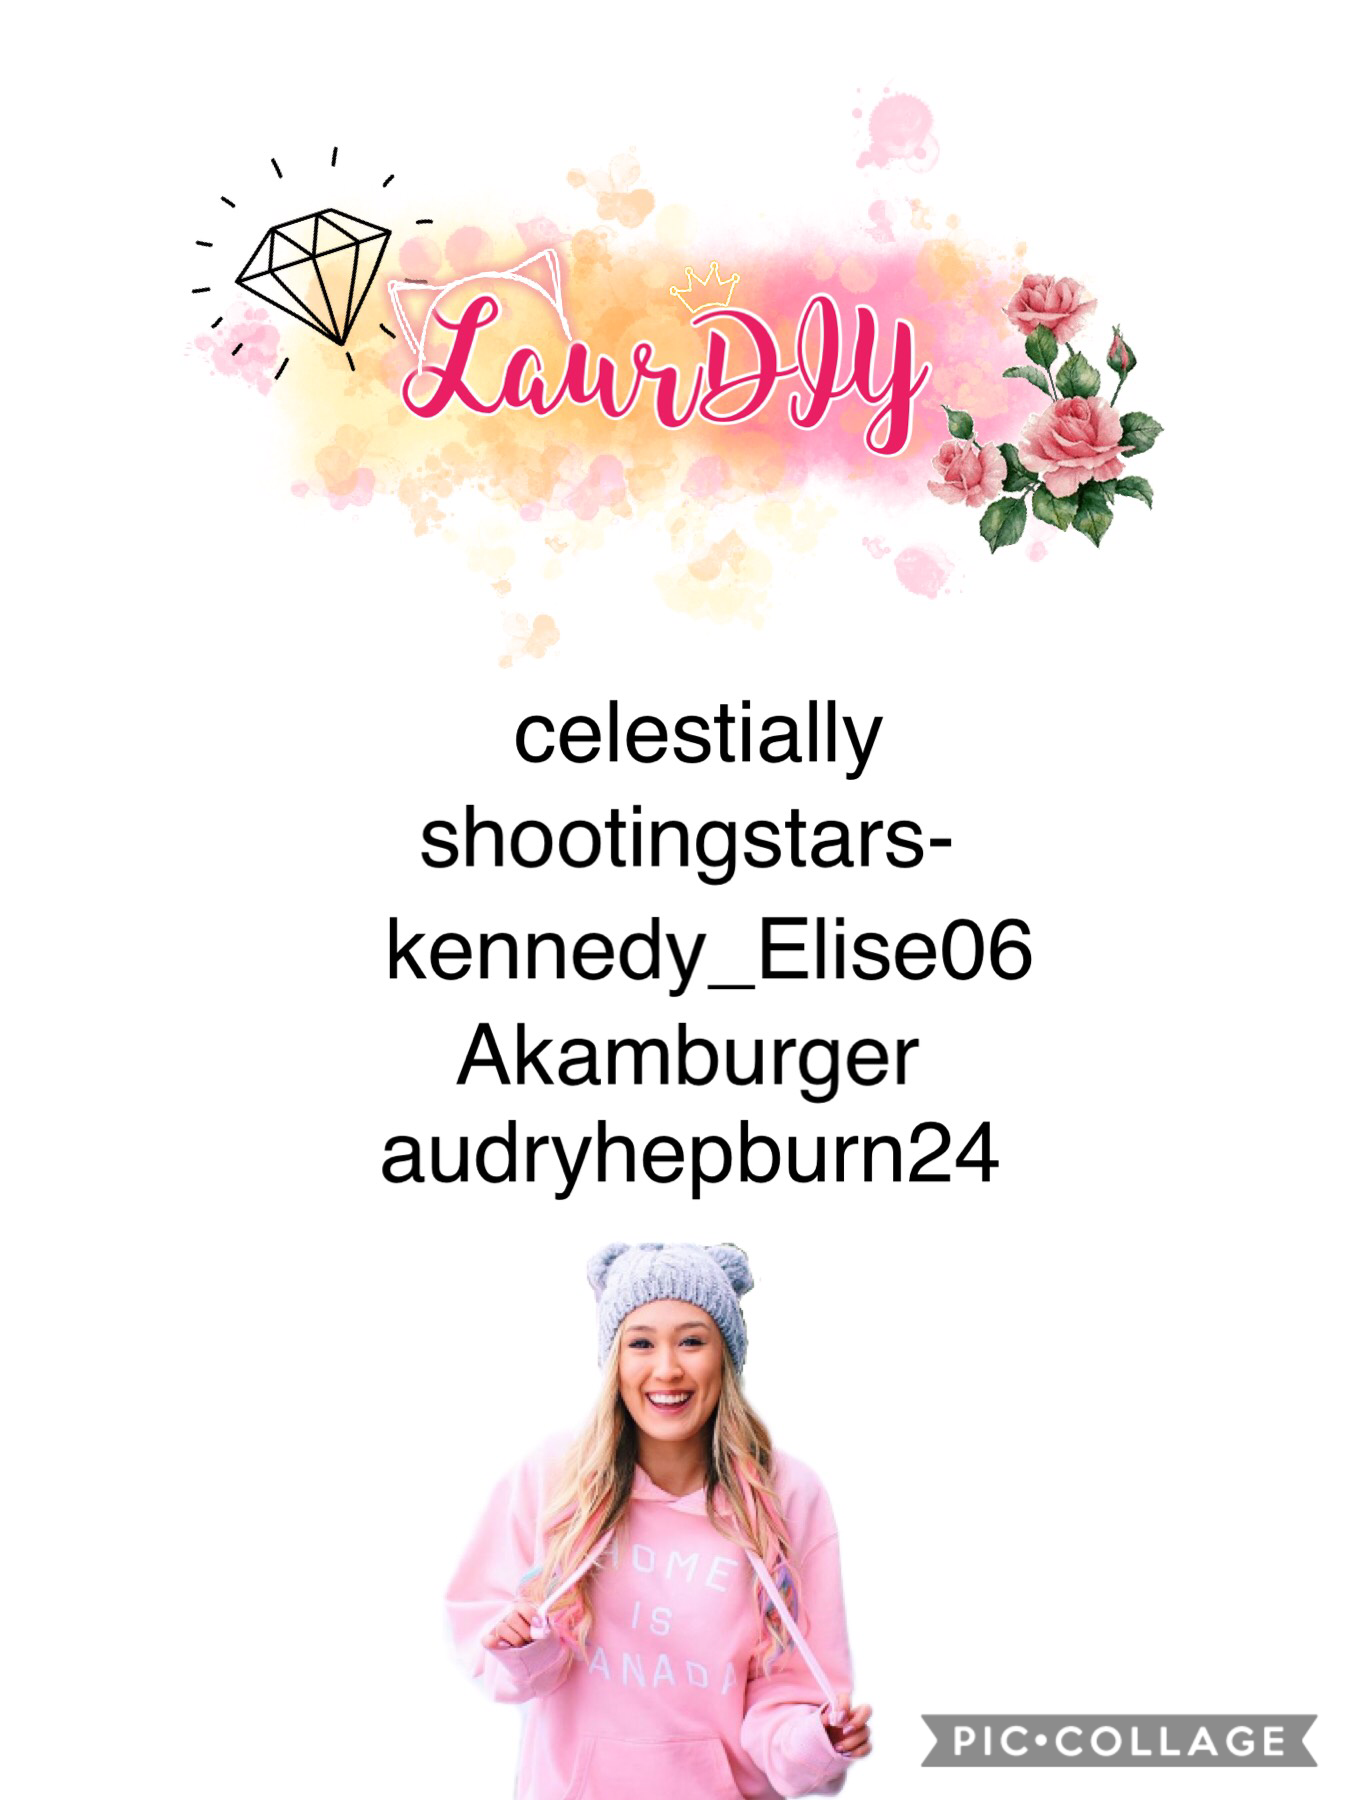 Team LaurDIY!!!!! Please let me know if I spelled your username incorrectly. Thanks!